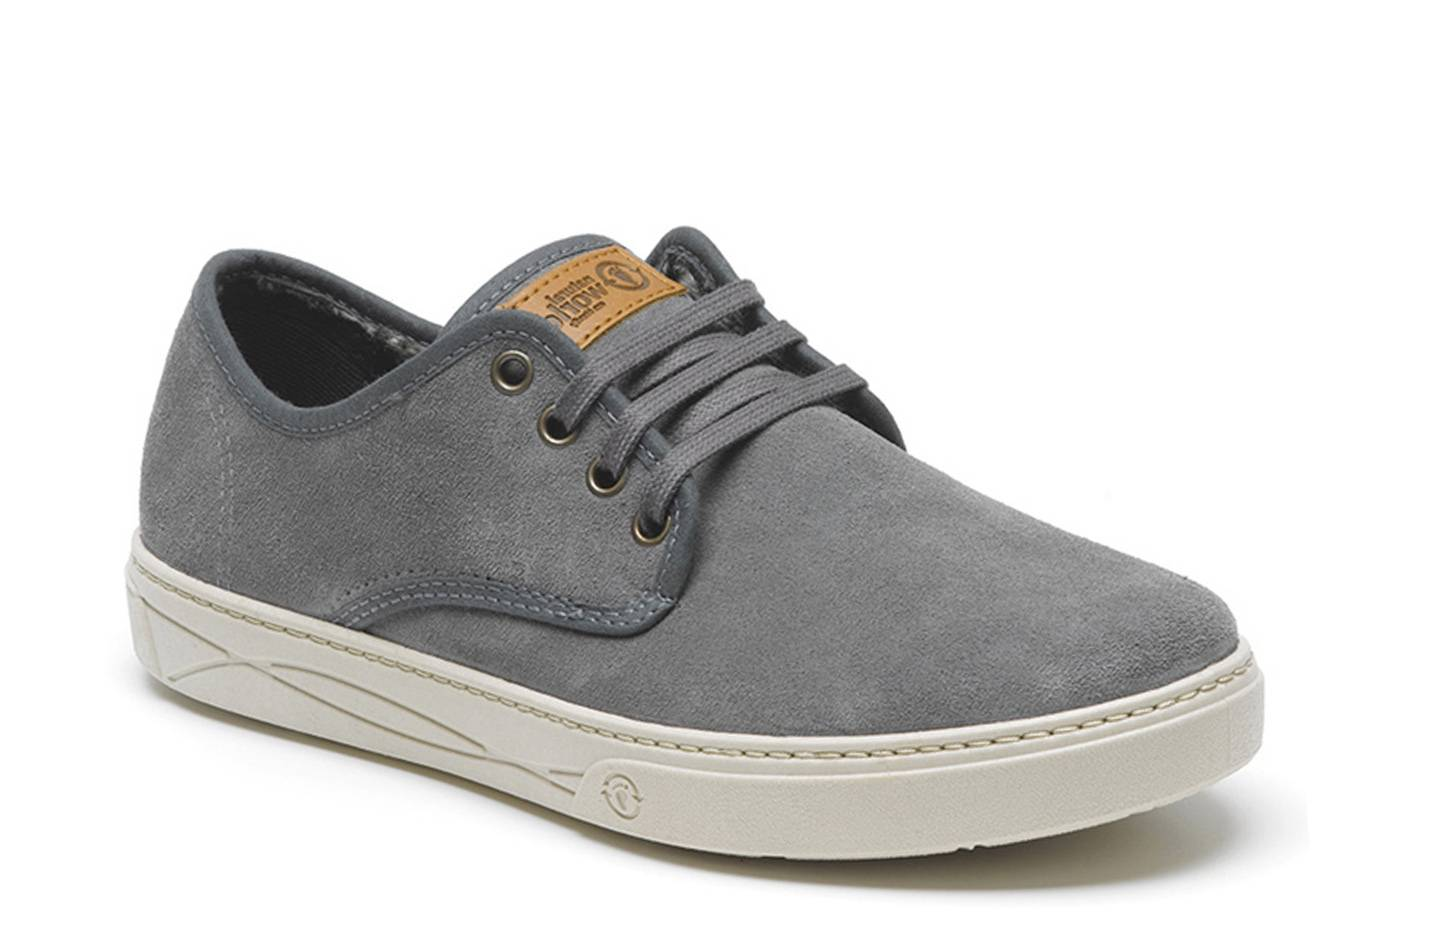 Natural World Zapatilla de Vestir Suede 824 Gris